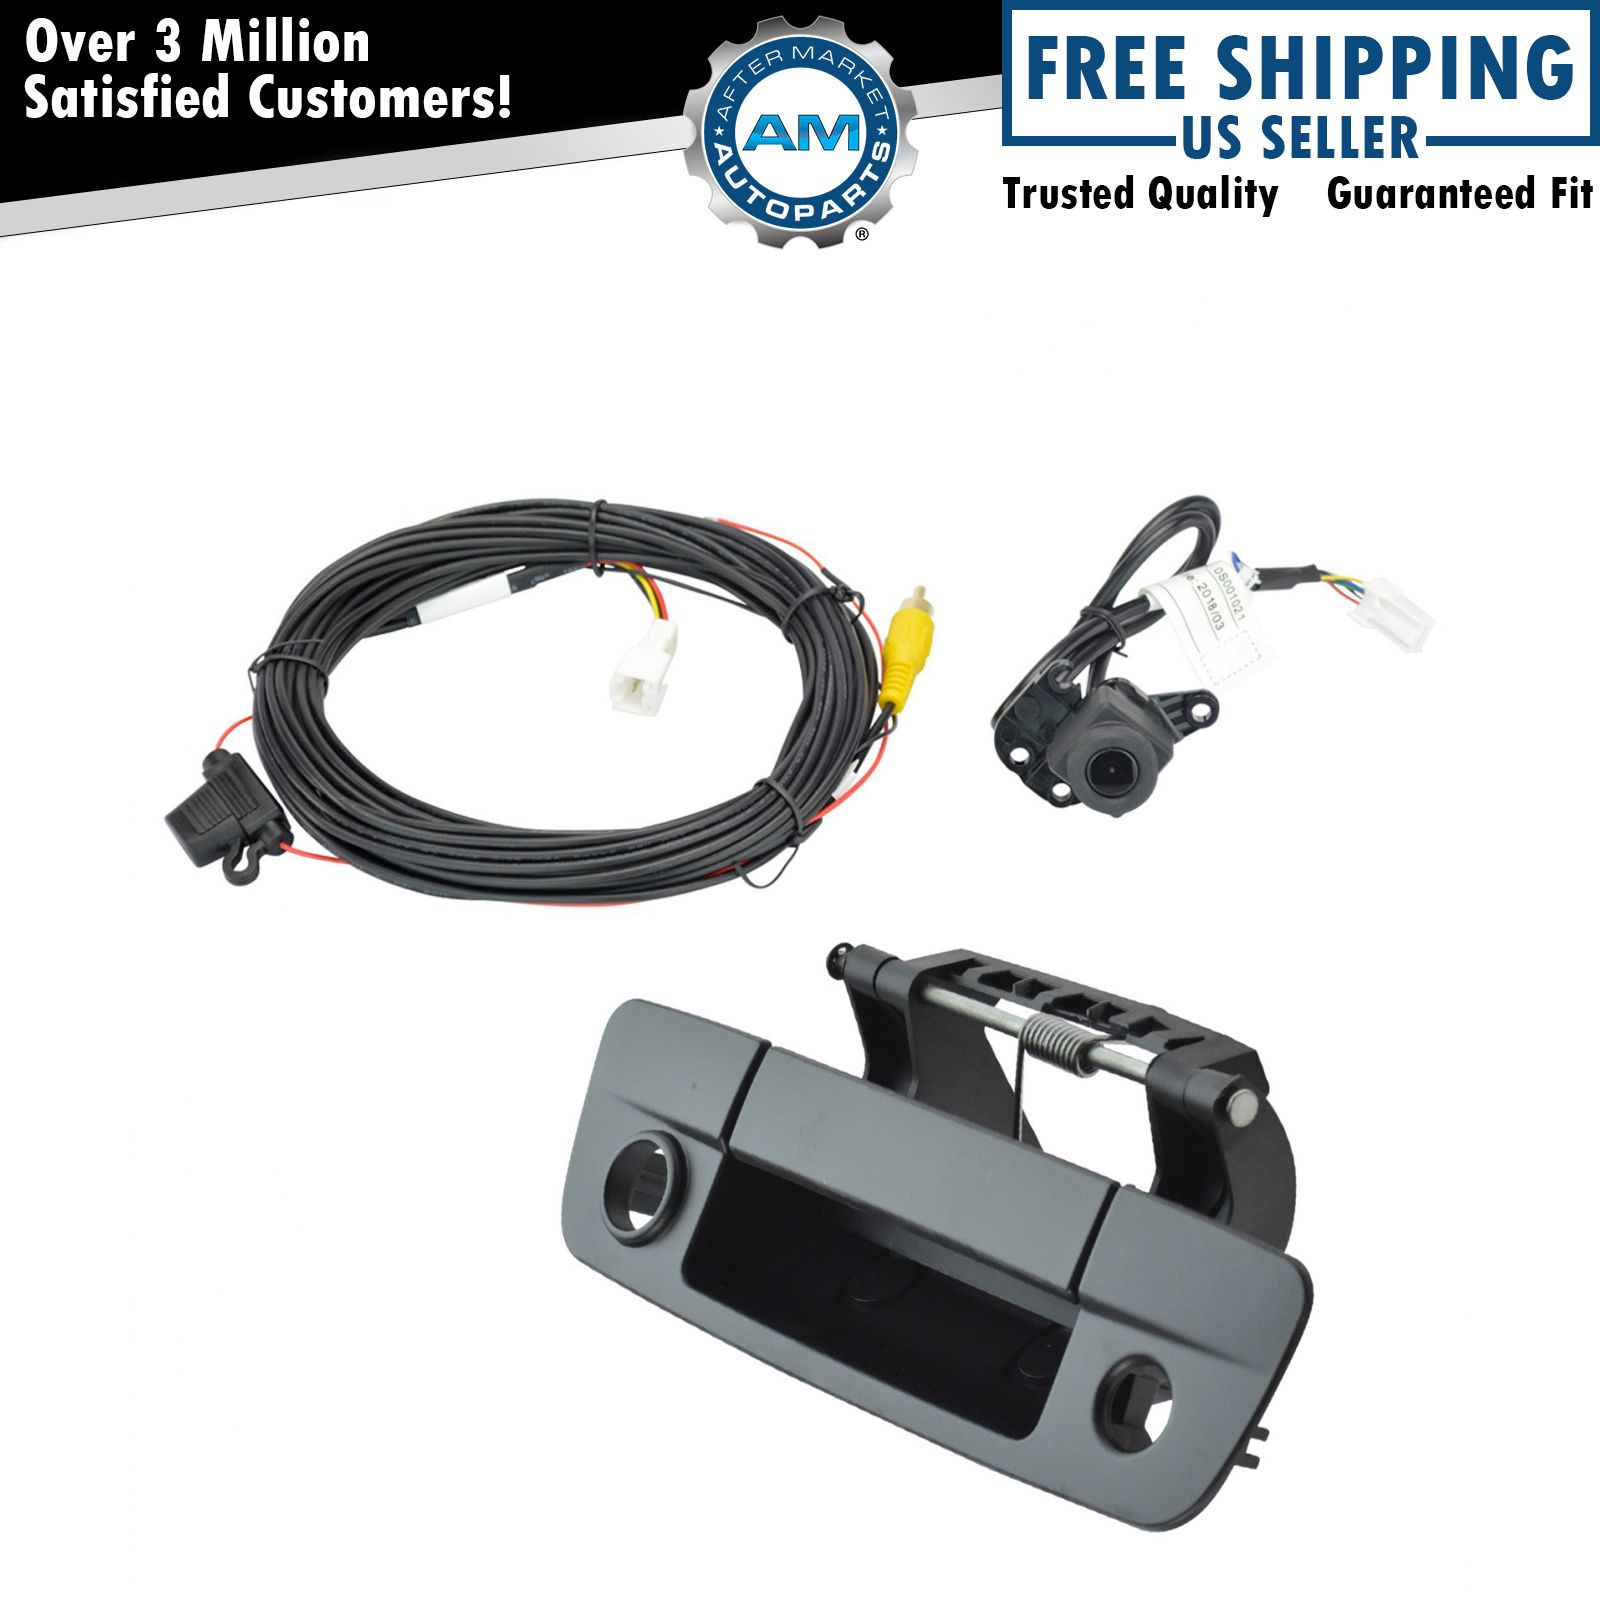 Rear View Camera Add On Kit w/ Wiring Harness & Tailgate Handle for Dodge  Pickup